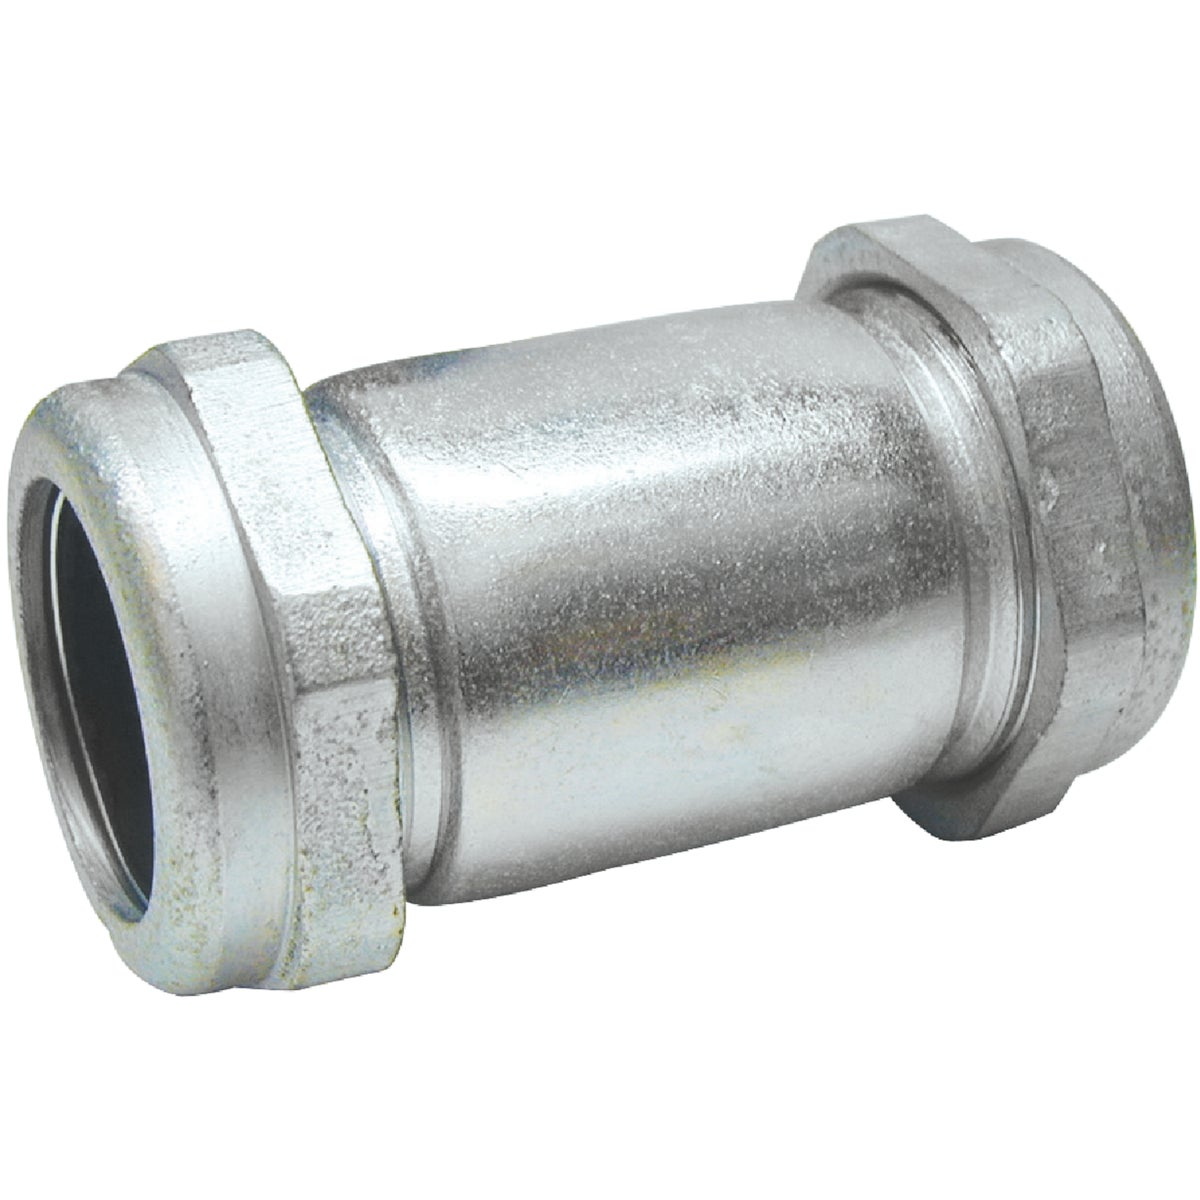 1X4-1/2 GALV COUPLING - 160-005 by Mueller B K